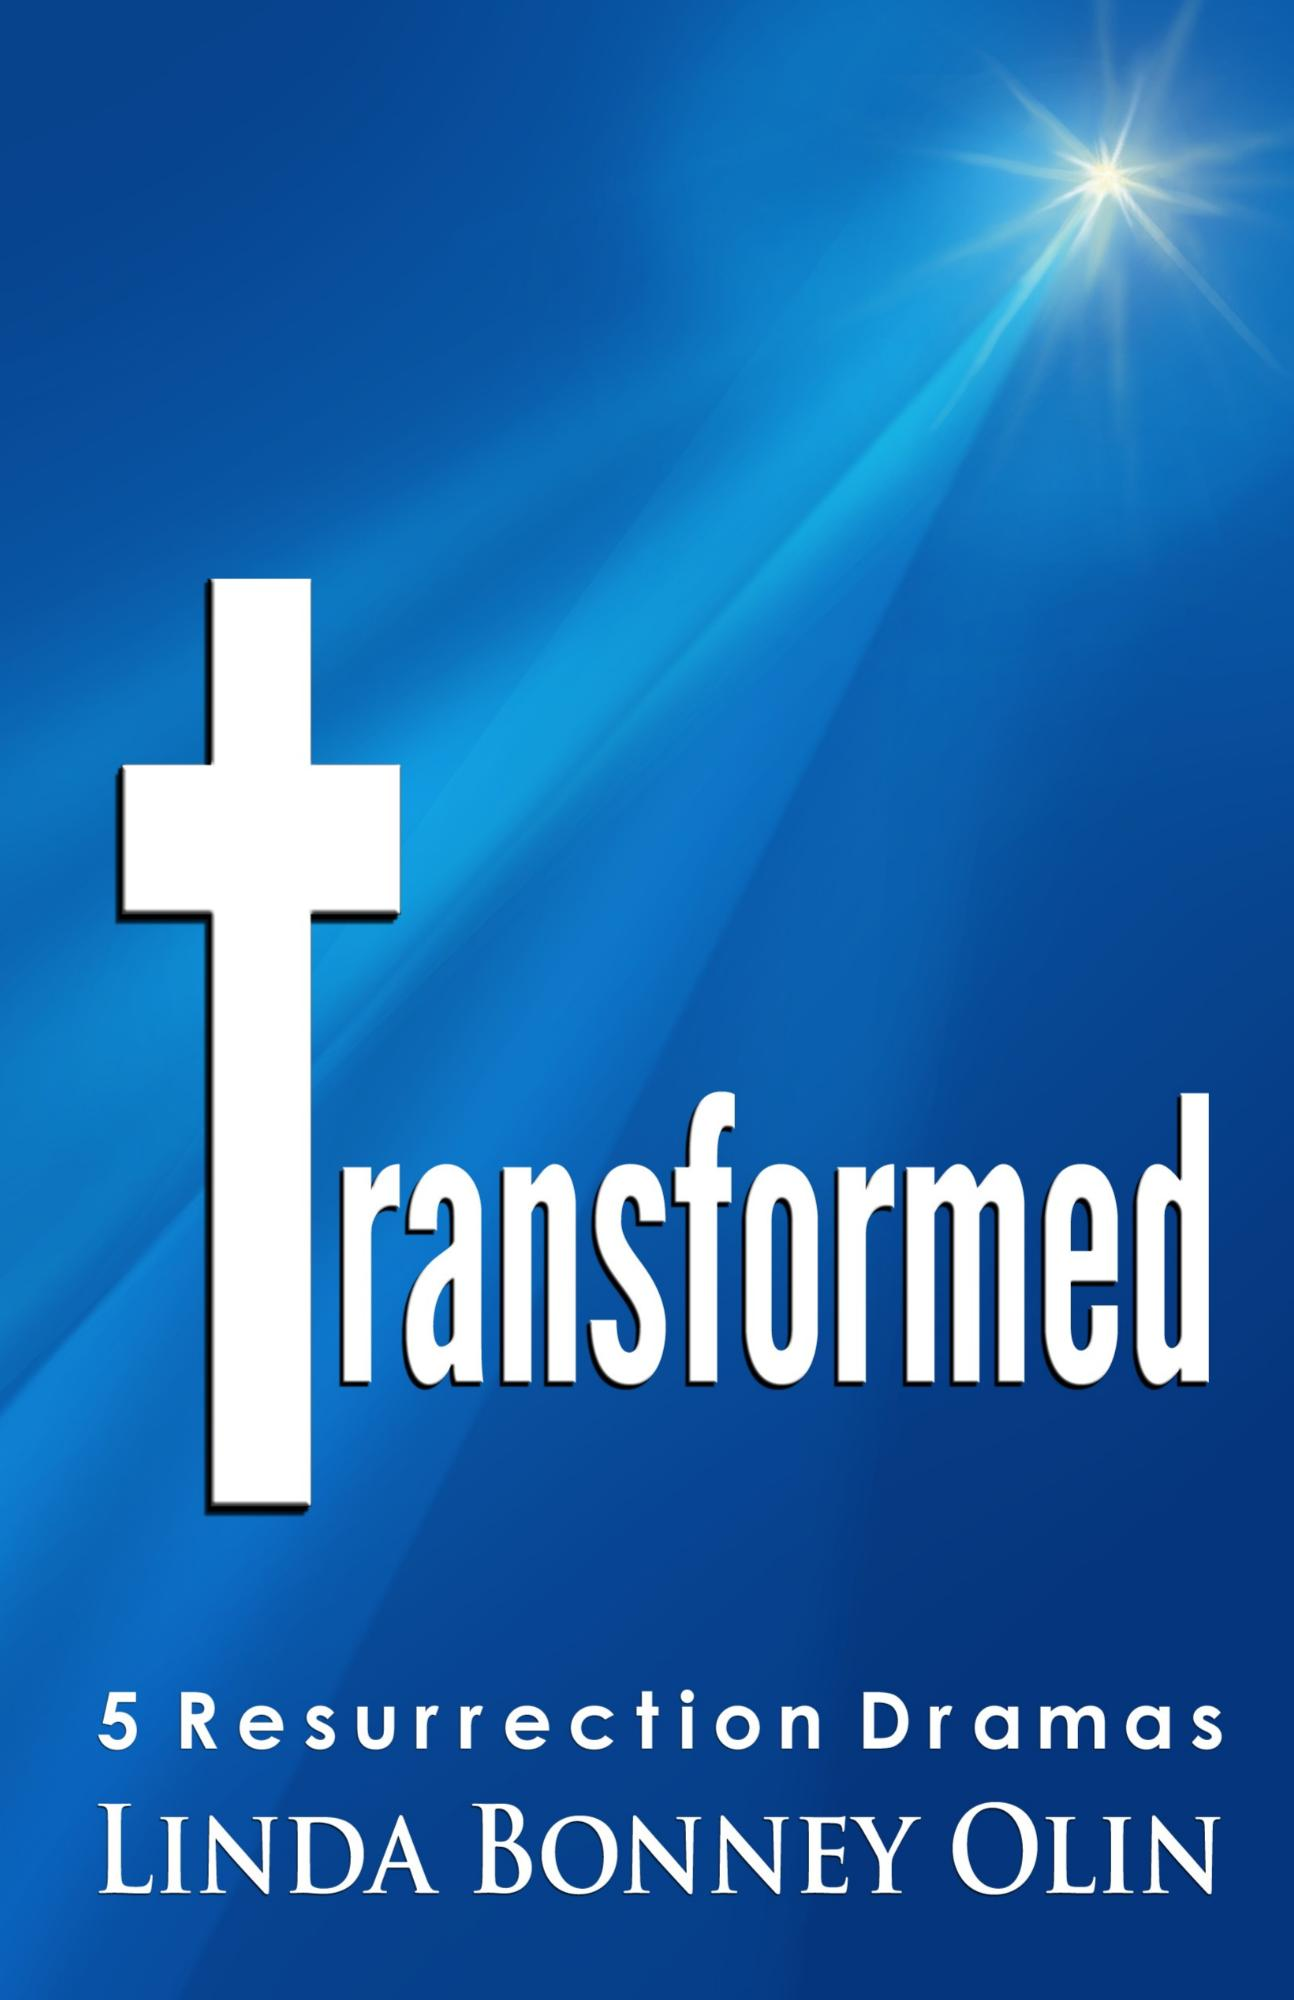 Jump to CreateSpace for Transformed: 5 Resurrection Dramas by Linda Bonney Olin